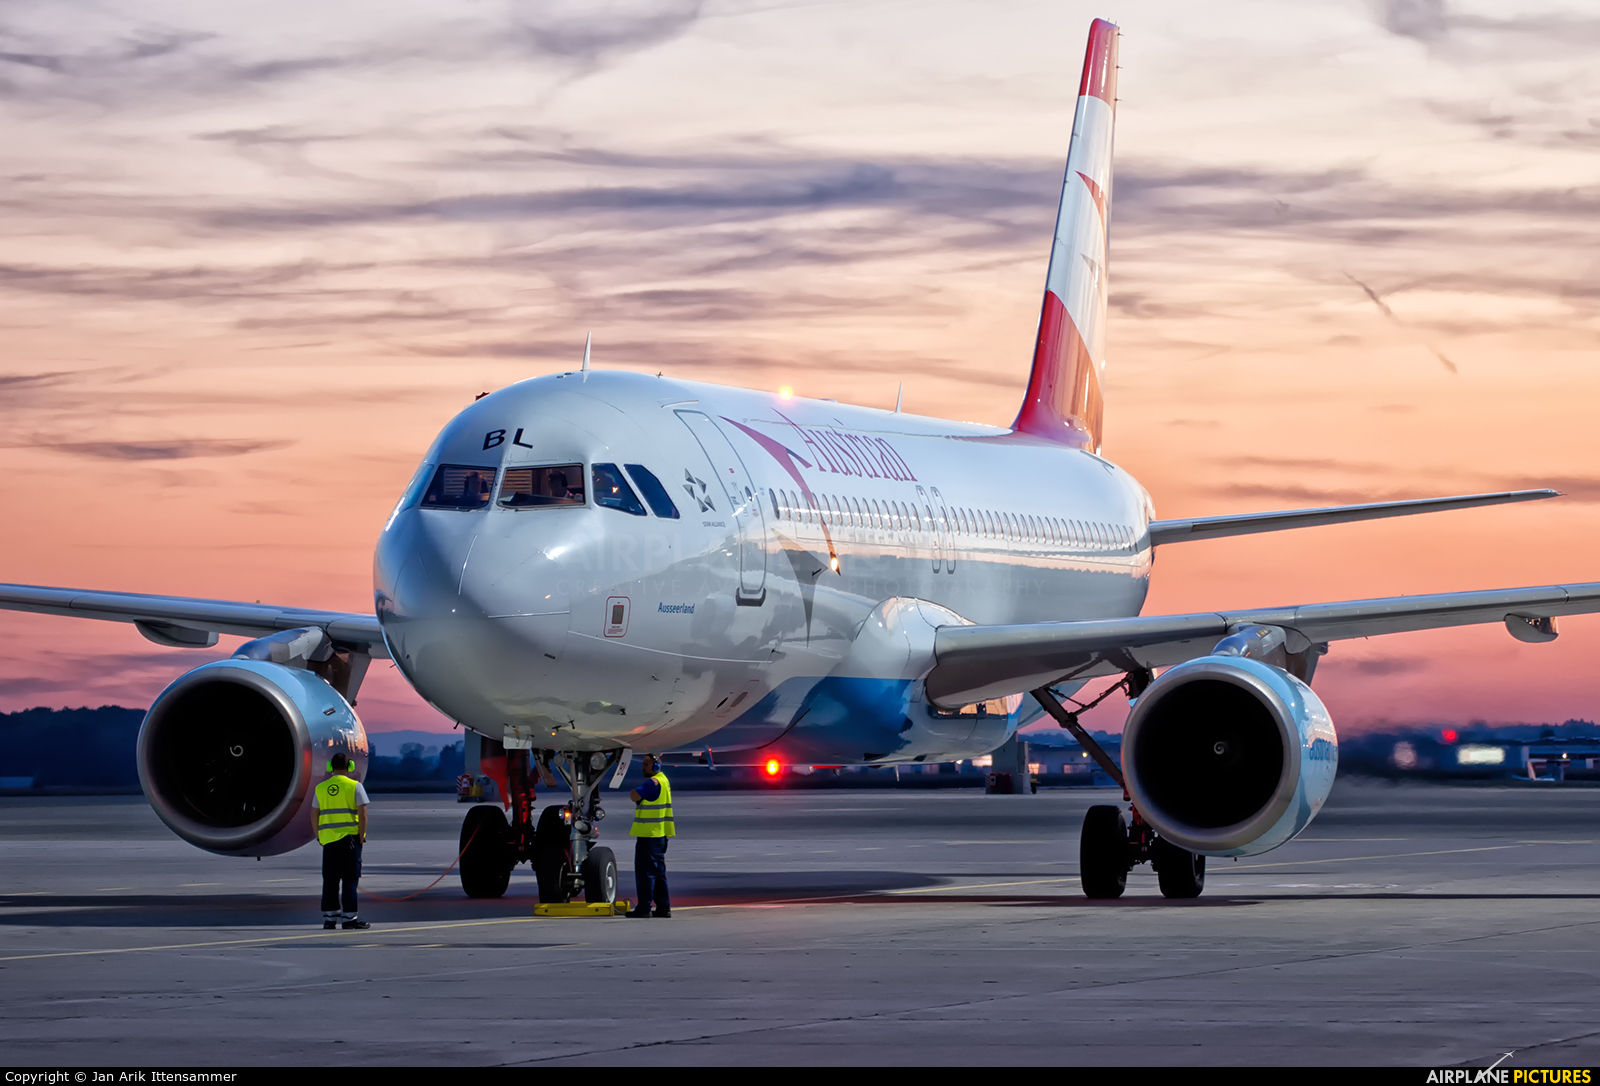 Austrian Airlines/Arrows/Tyrolean OE-LBL aircraft at Linz